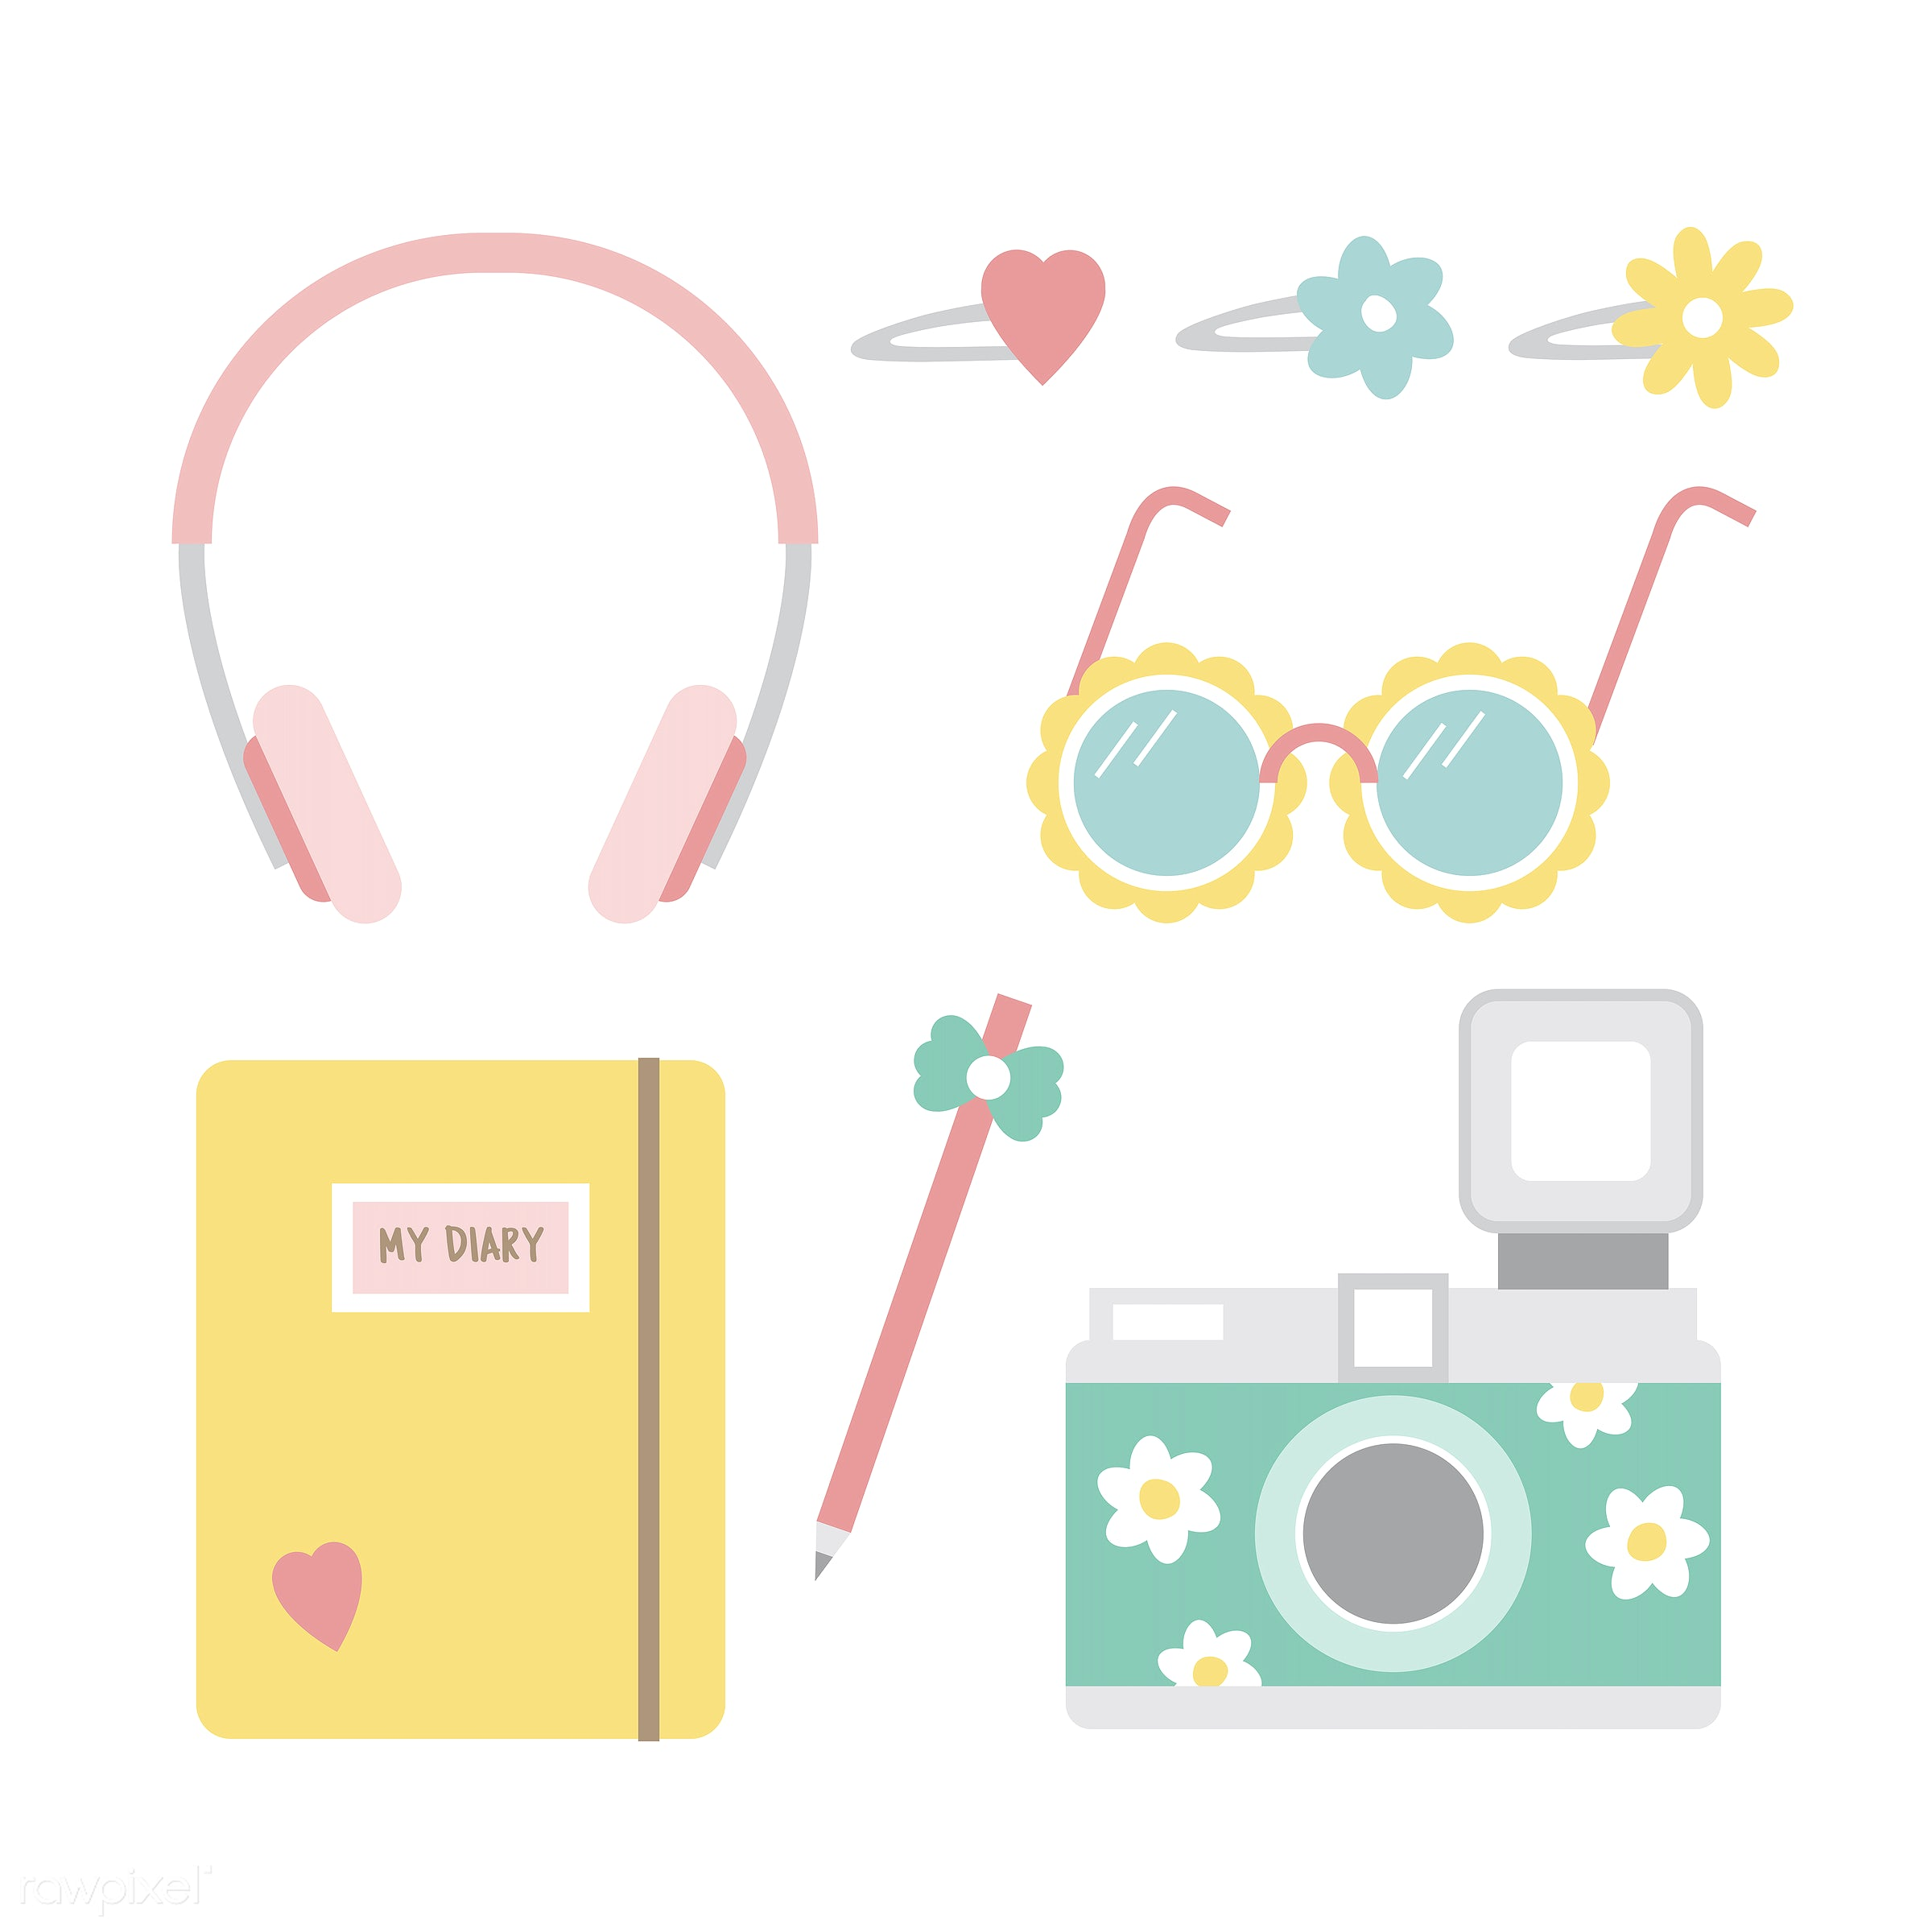 pastel, analog, camera, collection, cute, diary, girly, graphic, hobbies, illustration, leisure, notebook, notes, relaxation...